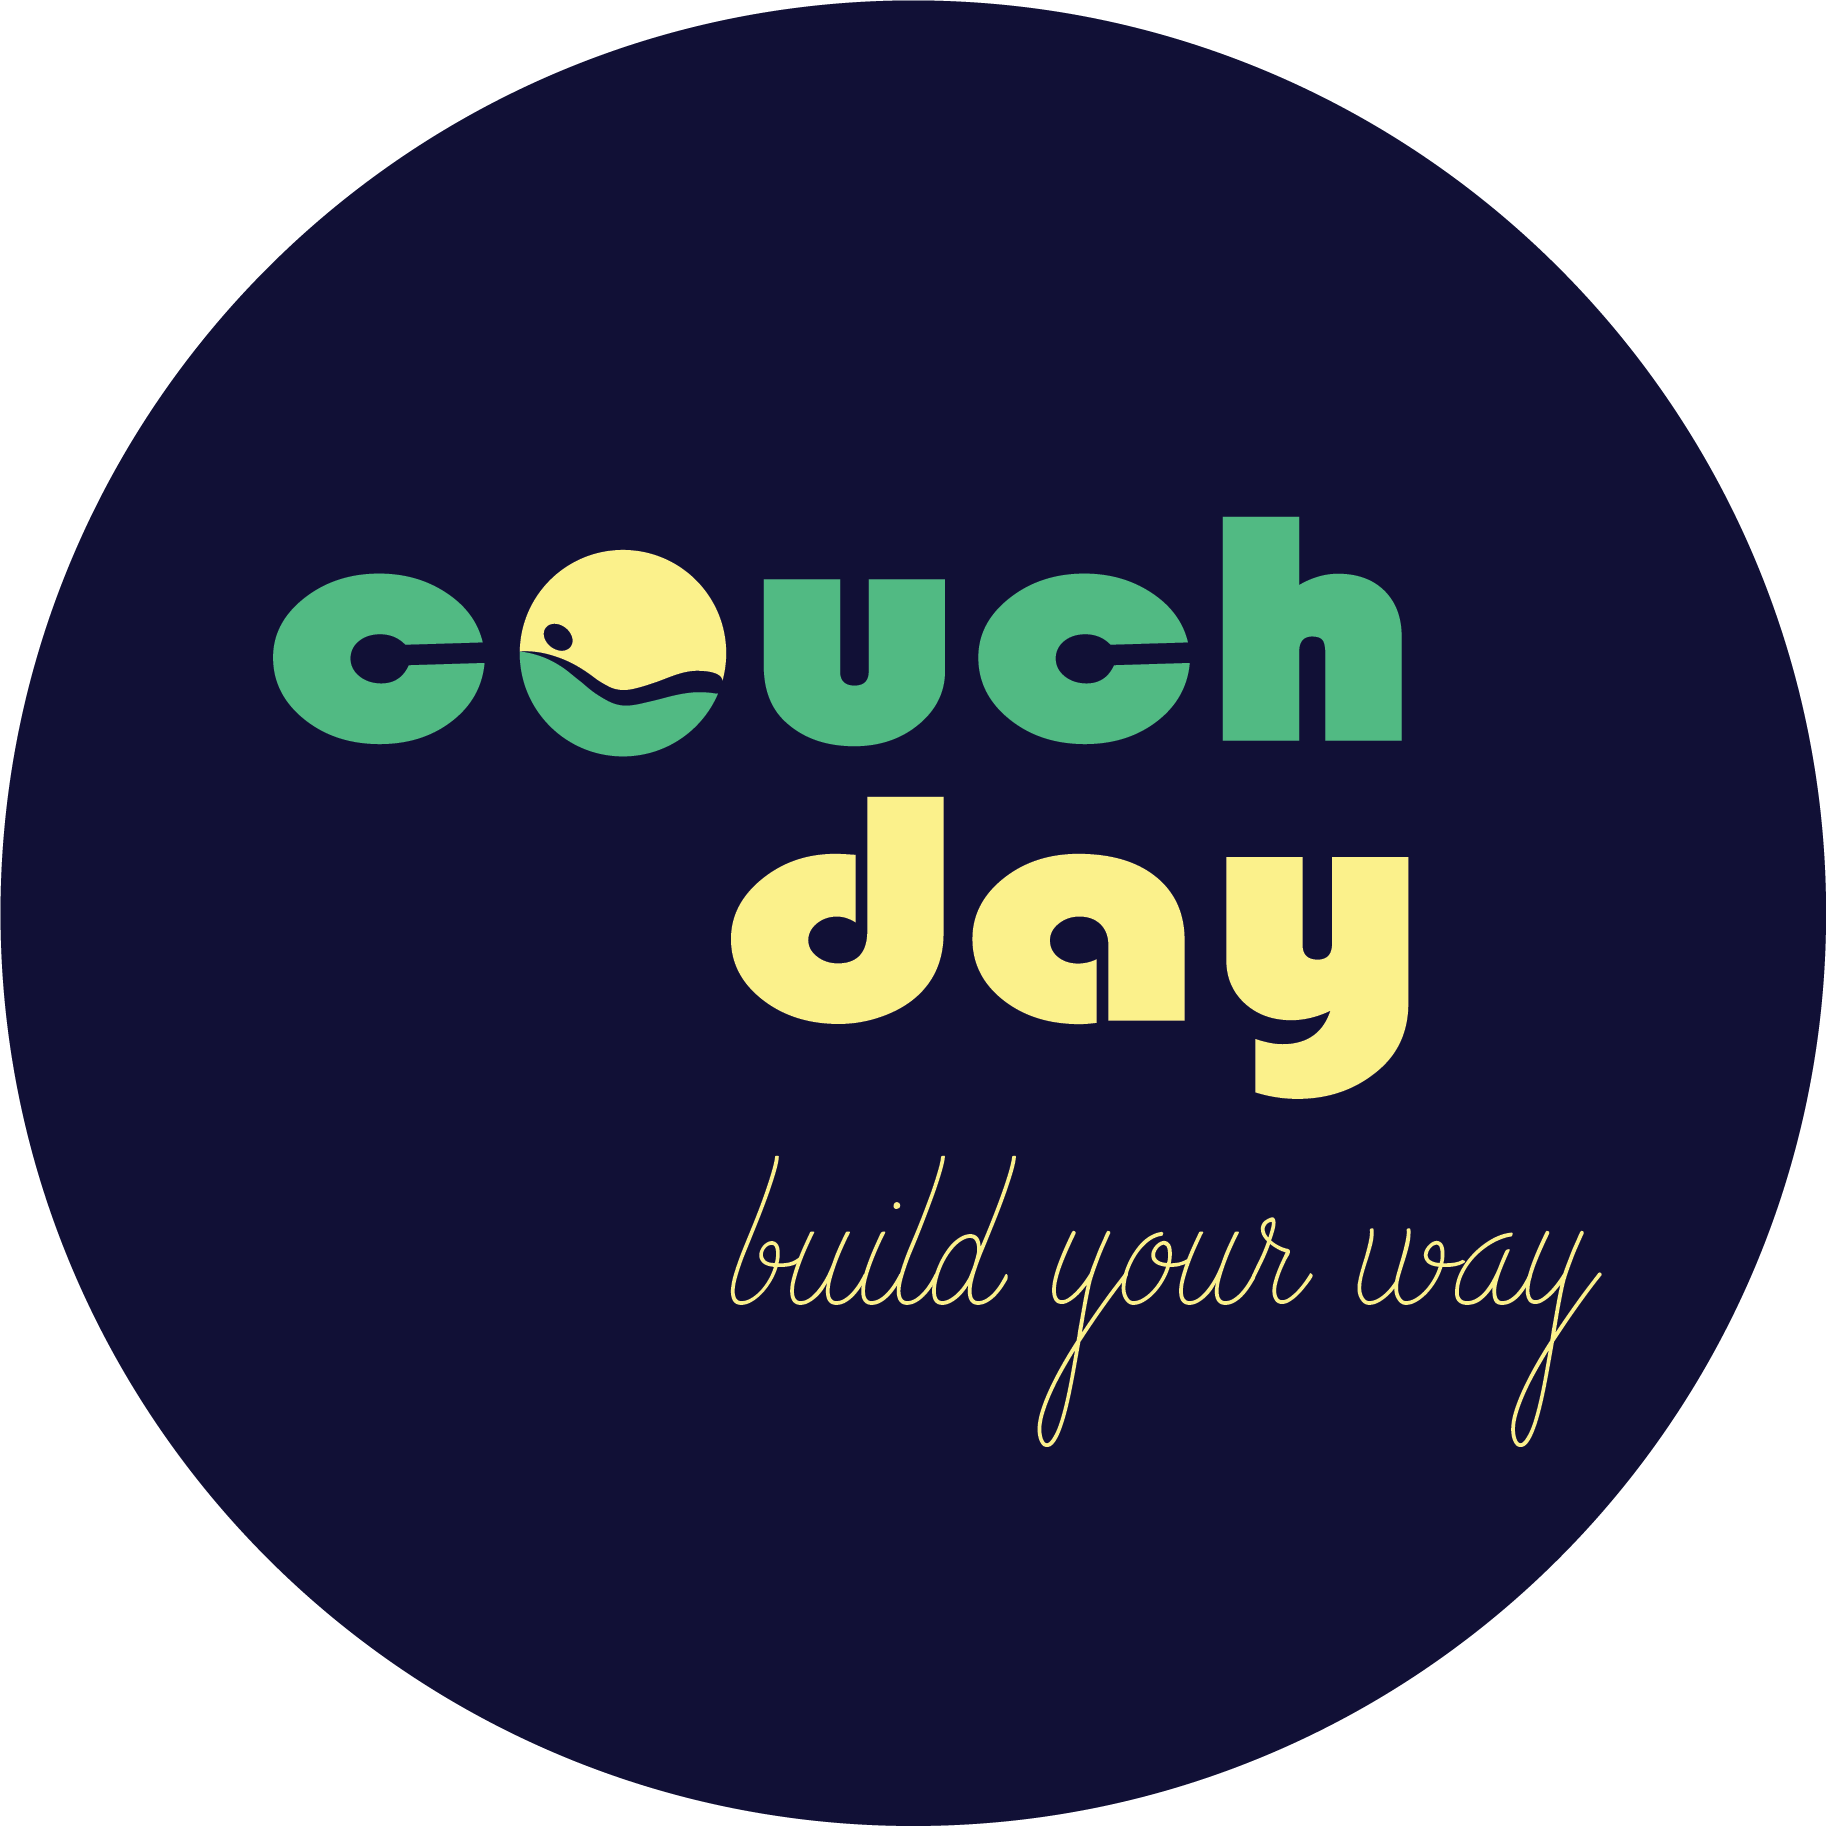 Couchday